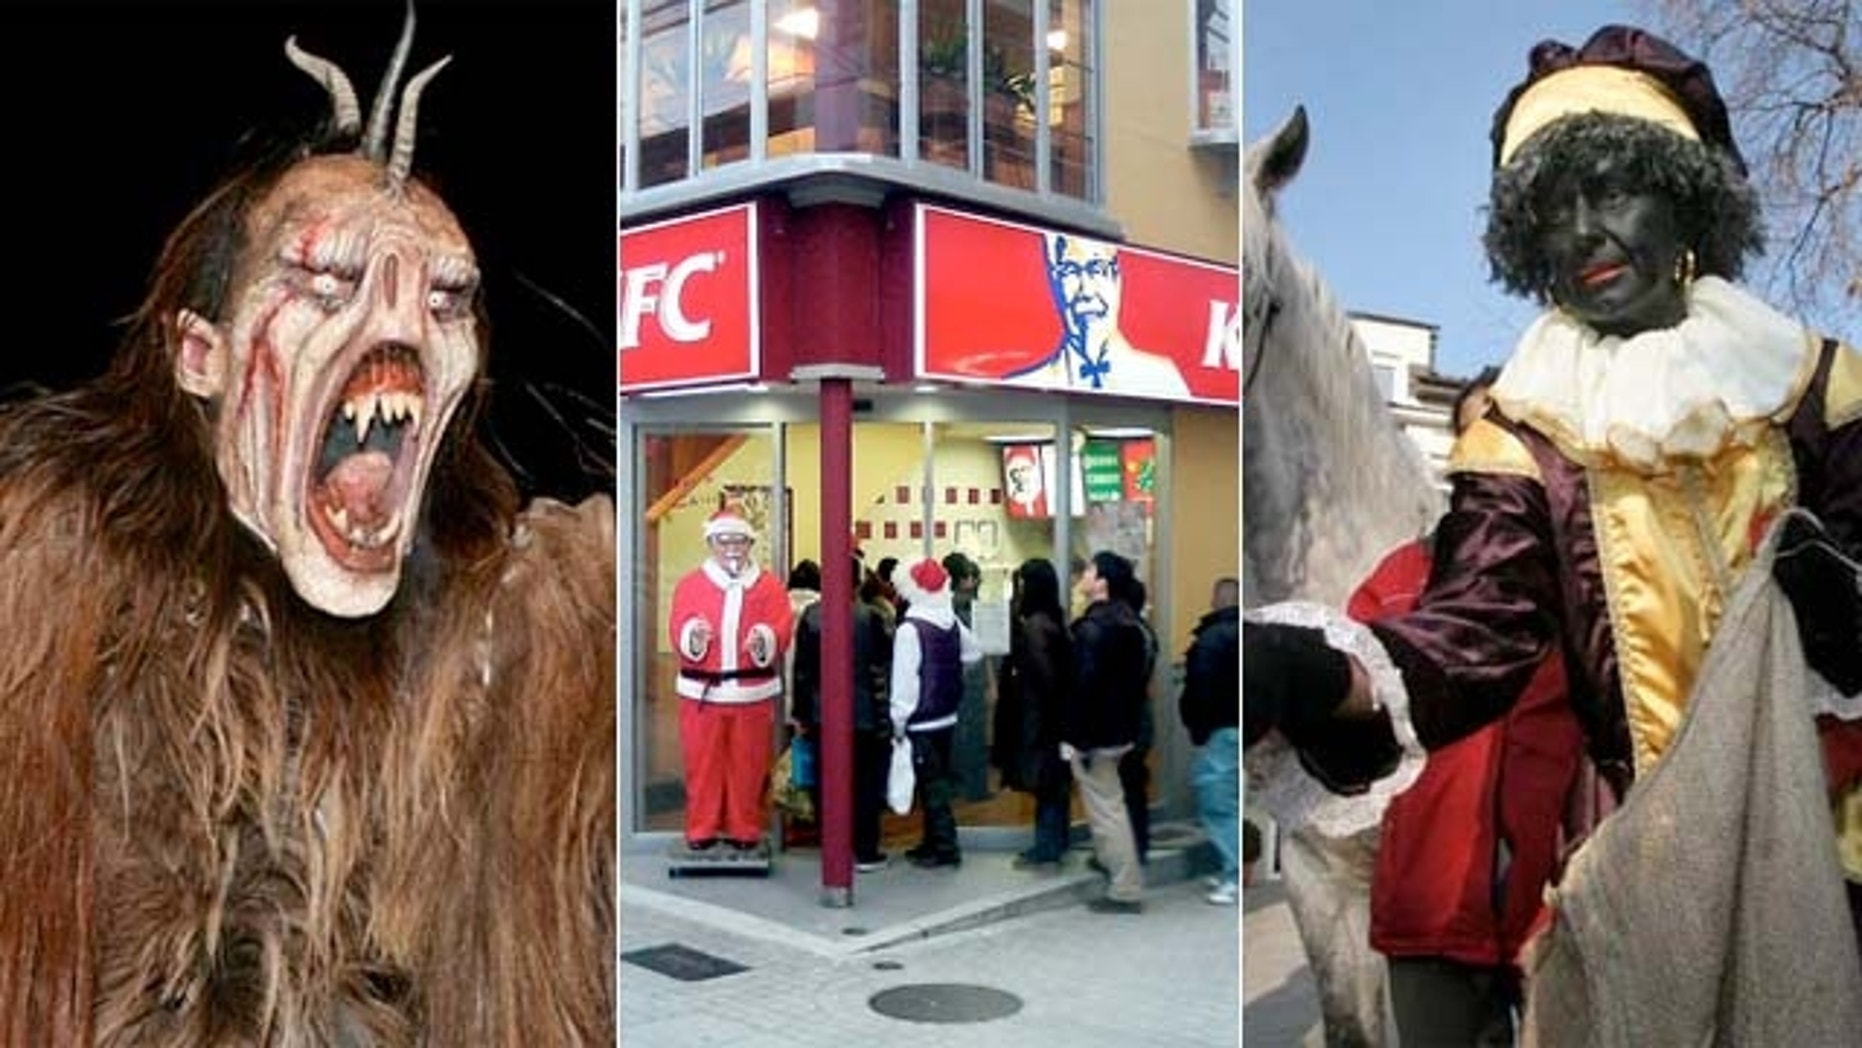 Odd Traditions: Austria has Krampusnacht Krampus, a goat-horned devil that shakes rusty chains and sticks at passing children; Japan celebrates with a chow-down at KFC; The Dutch have Black Peter, Santa's slave who abducts children that misbehave.